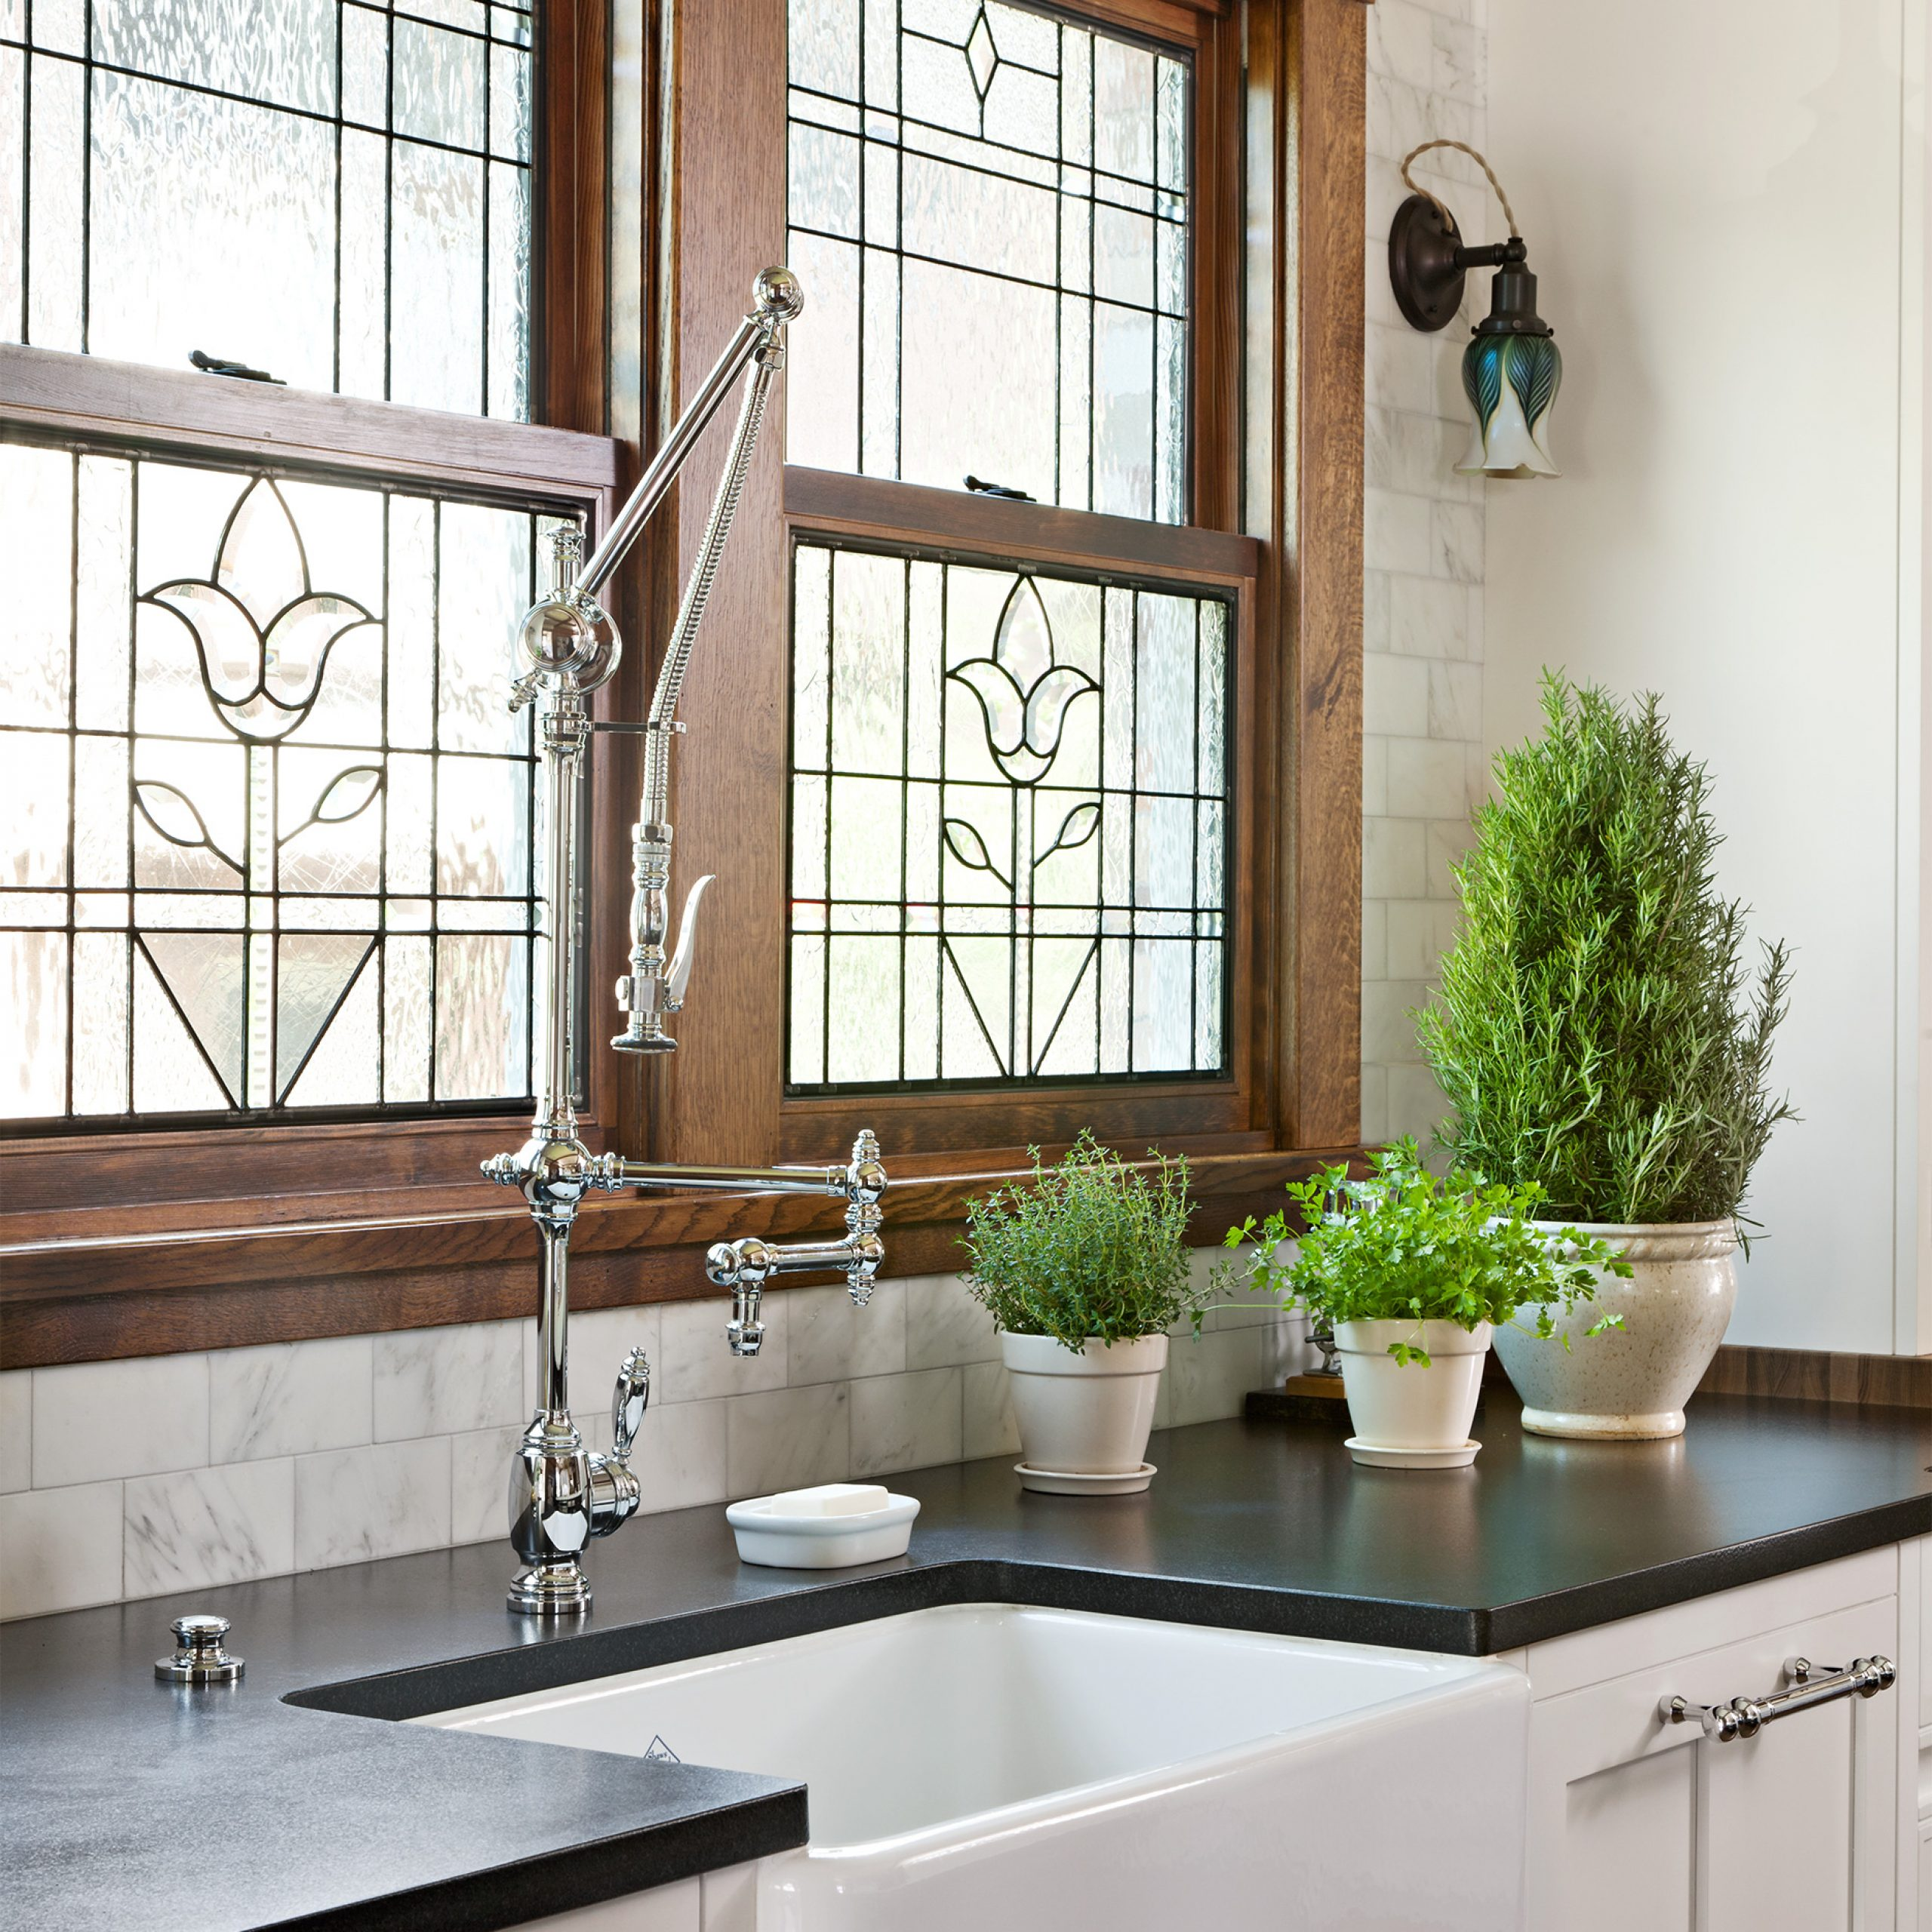 17 Rustic Window Treatments You'll Want To Try Now Regarding Classic Kitchen Curtain Sets (View 1 of 20)